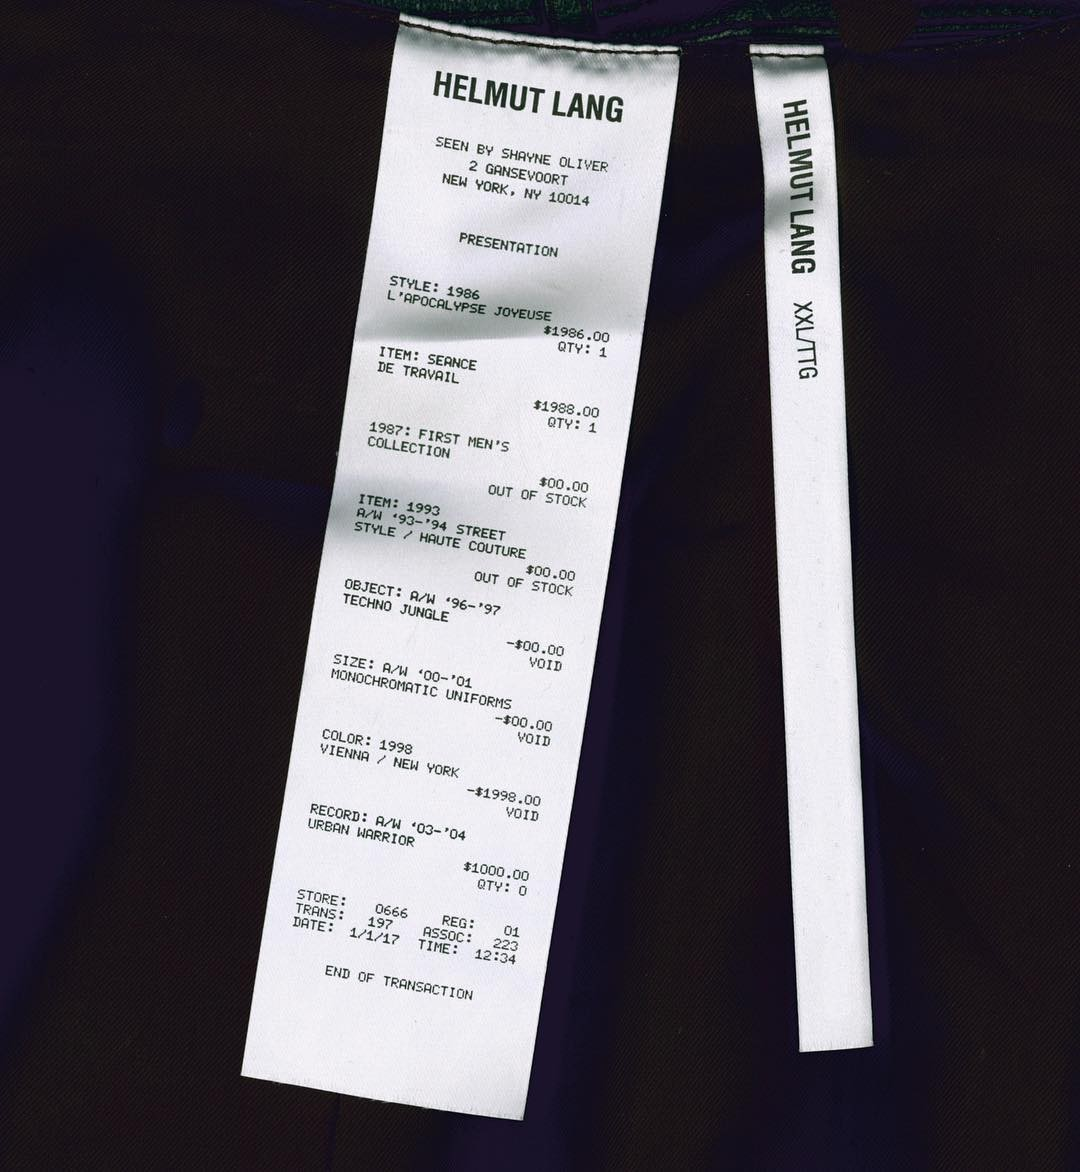 Garment labels Helmut Lang seen by Shayne Oliver Shop now at WWW.HELMUTLANG.COM